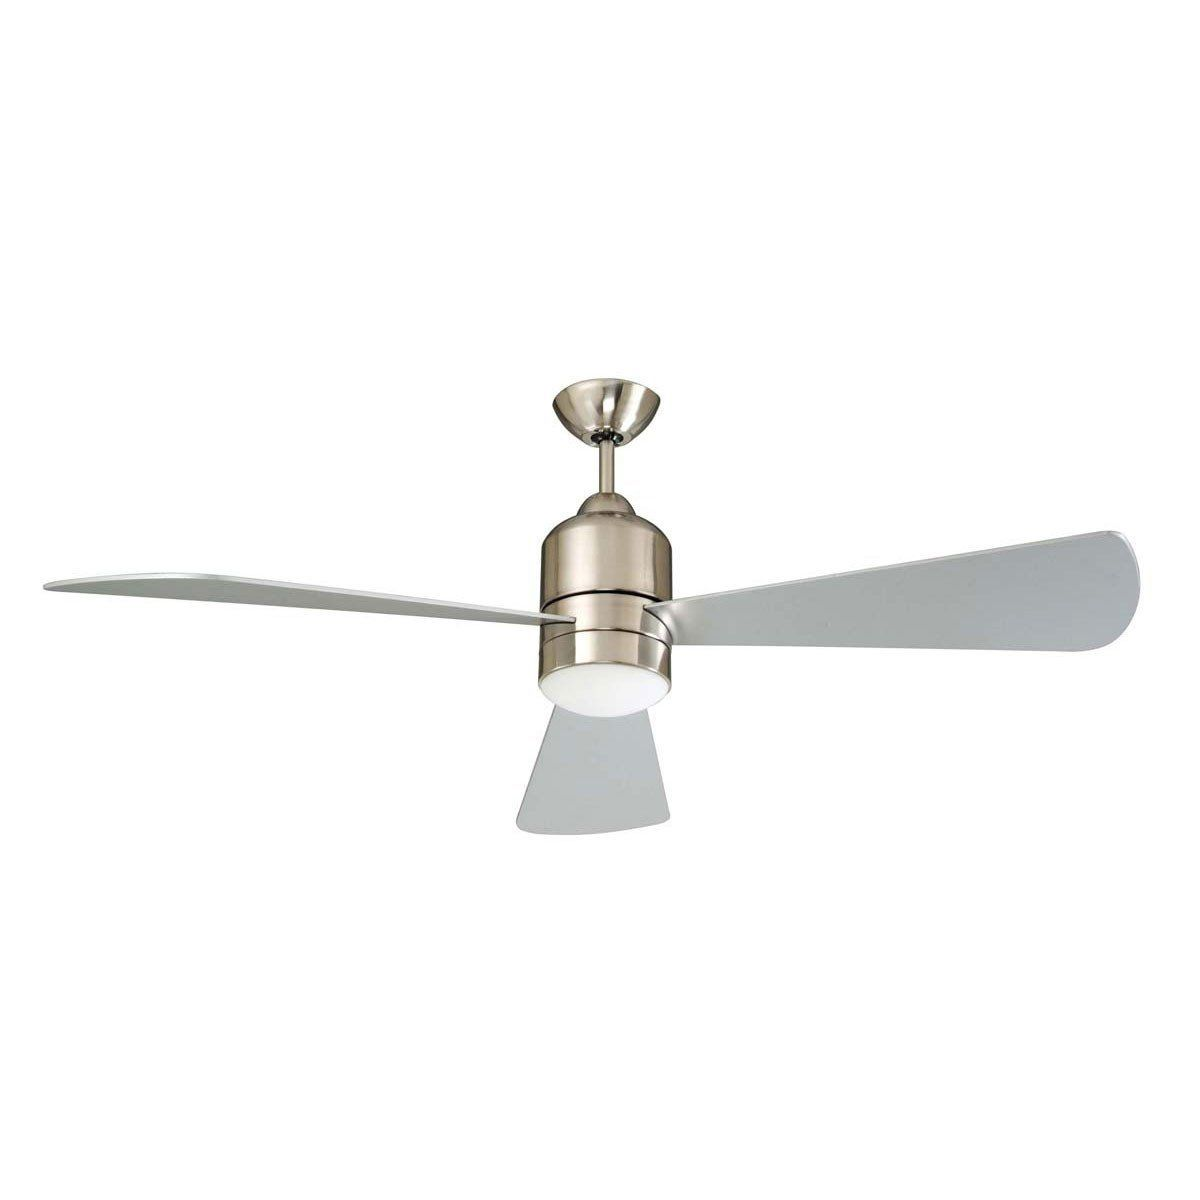 Fans 60 decca large stainless steel ceiling fan with light remote concord fans 60 decca large stainless steel ceiling fan with light remote aloadofball Choice Image